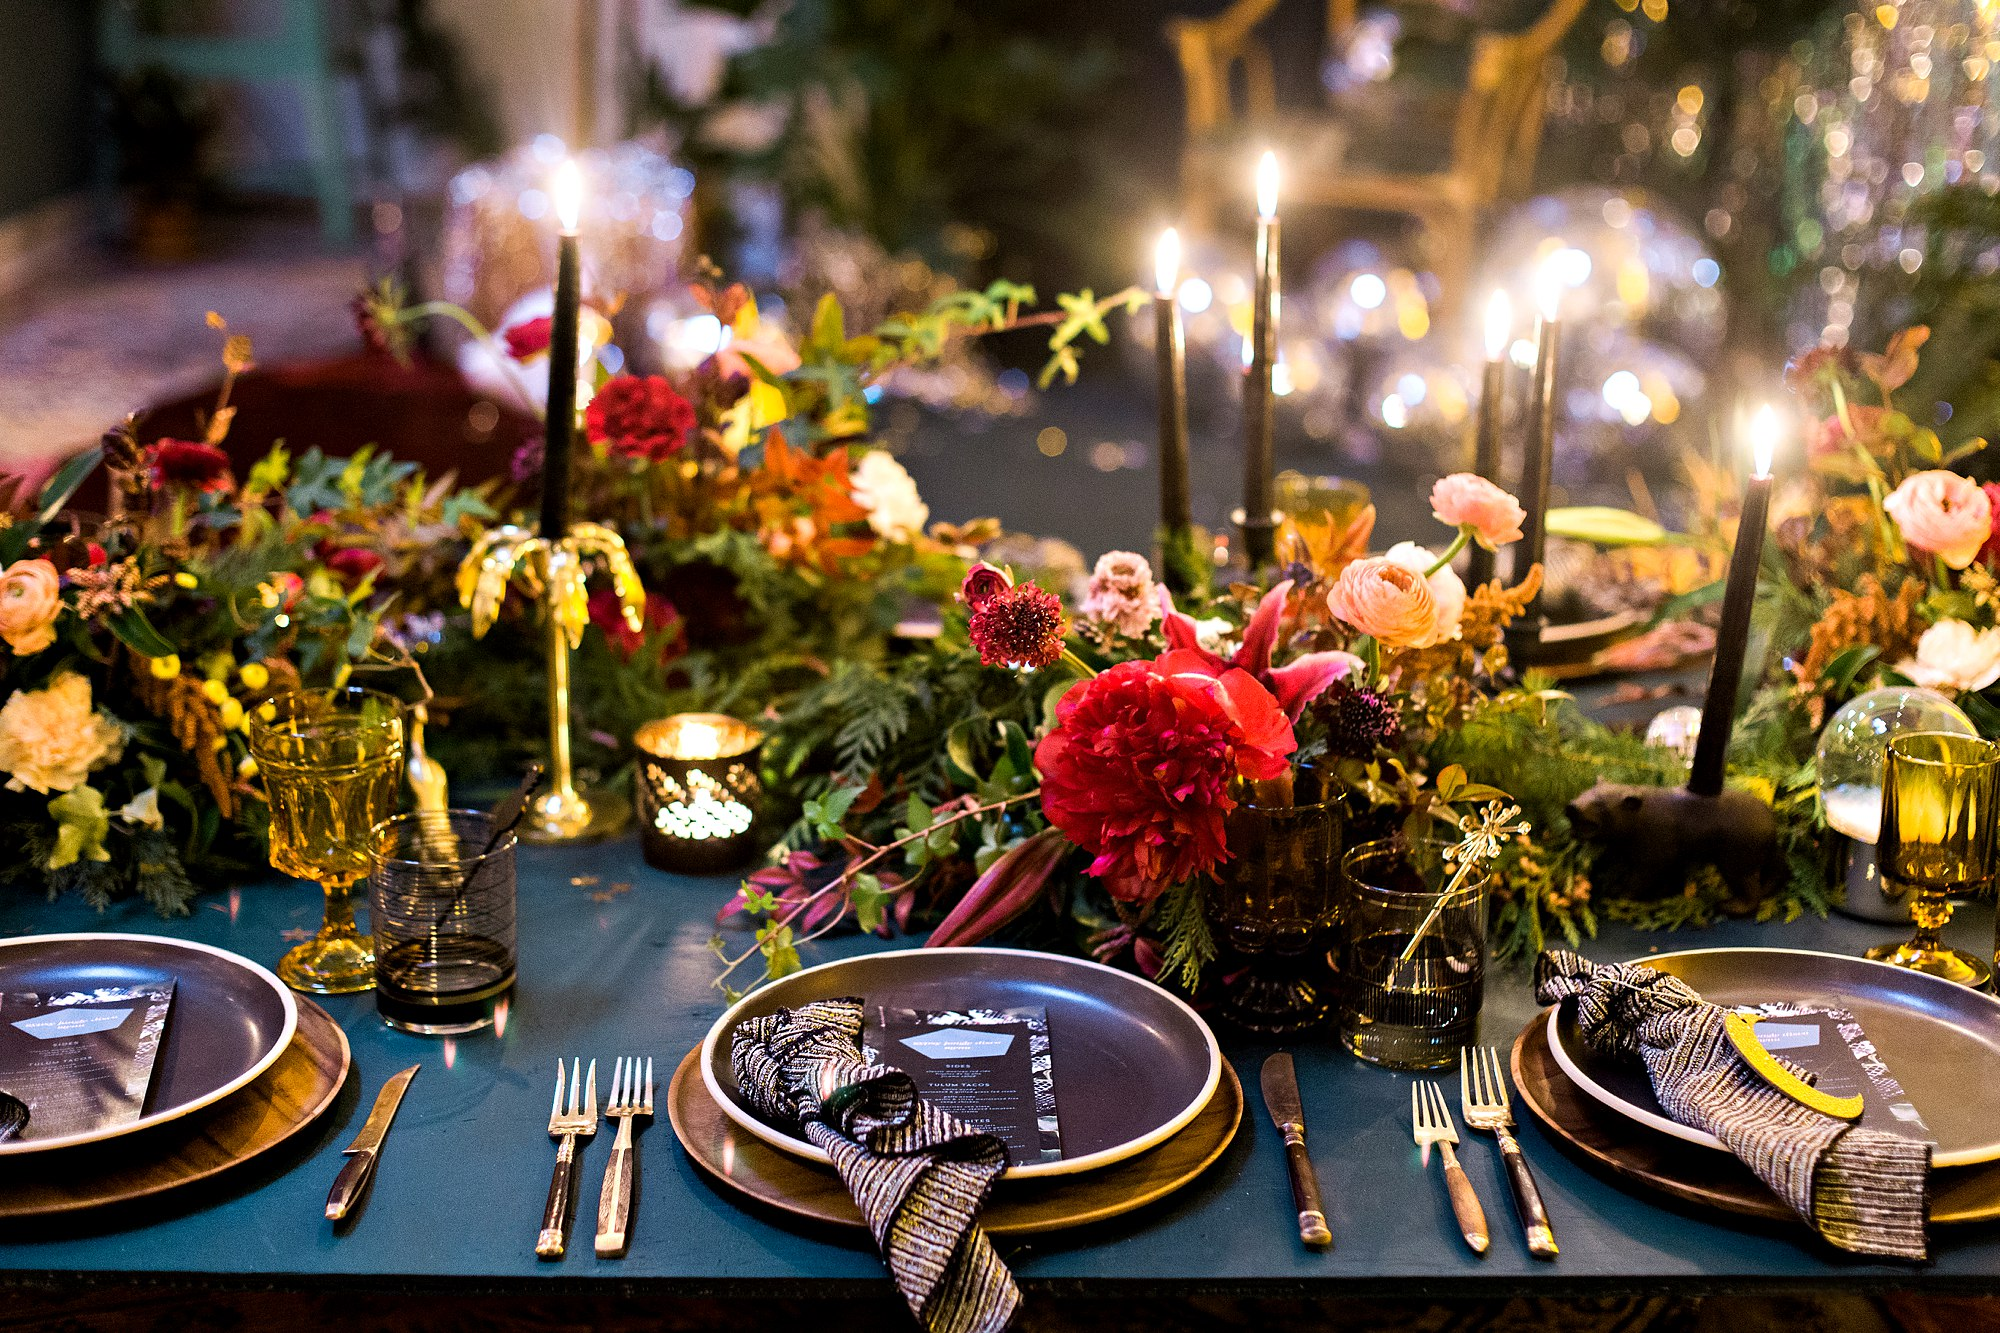 San Diego Lifestyle Photographer - Venue Report Holiday Party_0003.jpg